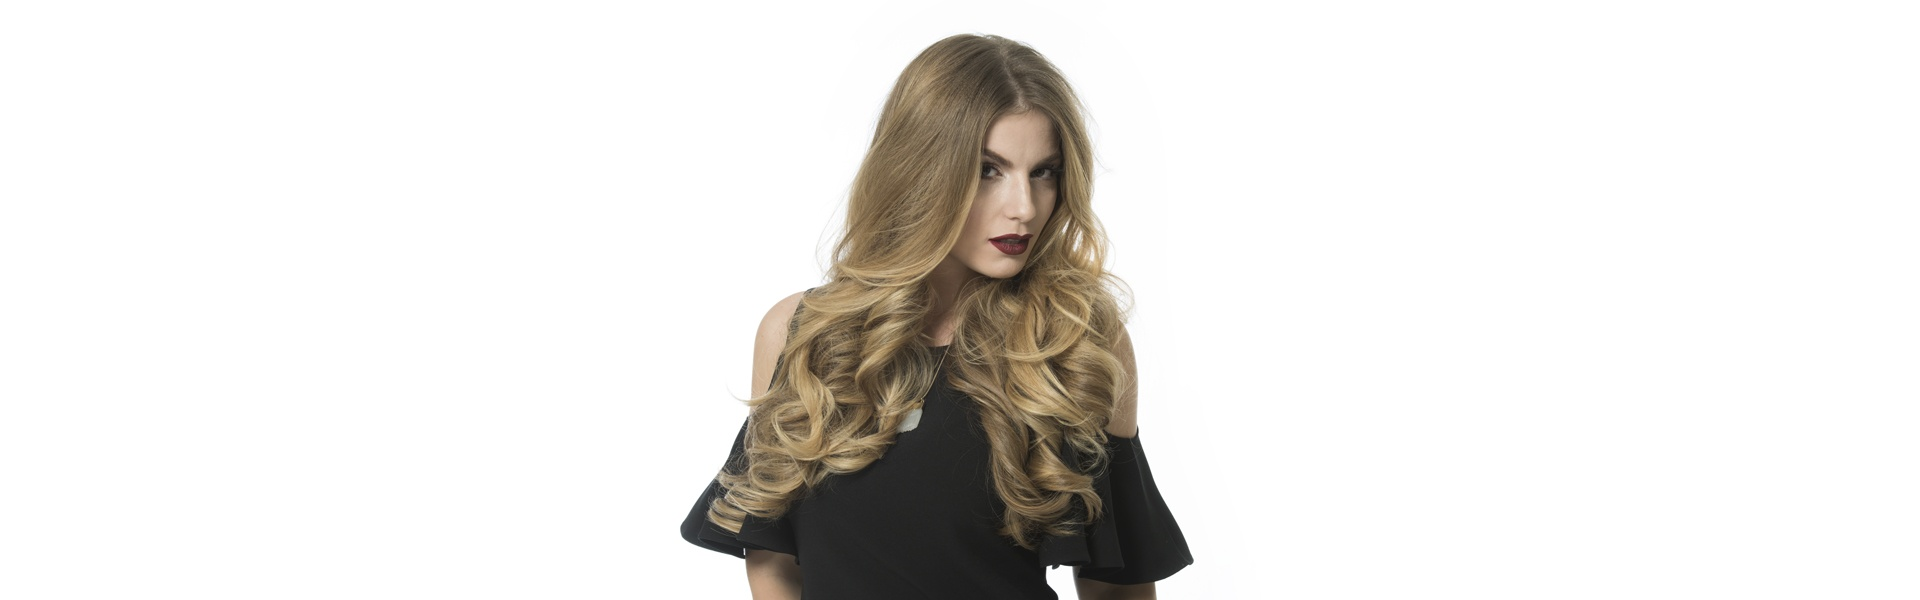 Balayage Plano Frisco Dallas AALAM The salon Best hair salon Allen McKinney Addison TX DFW Top Hair Colorist Balayage Highlights Hair Color Specialist Blonde Red Brunette Ombre AALAM